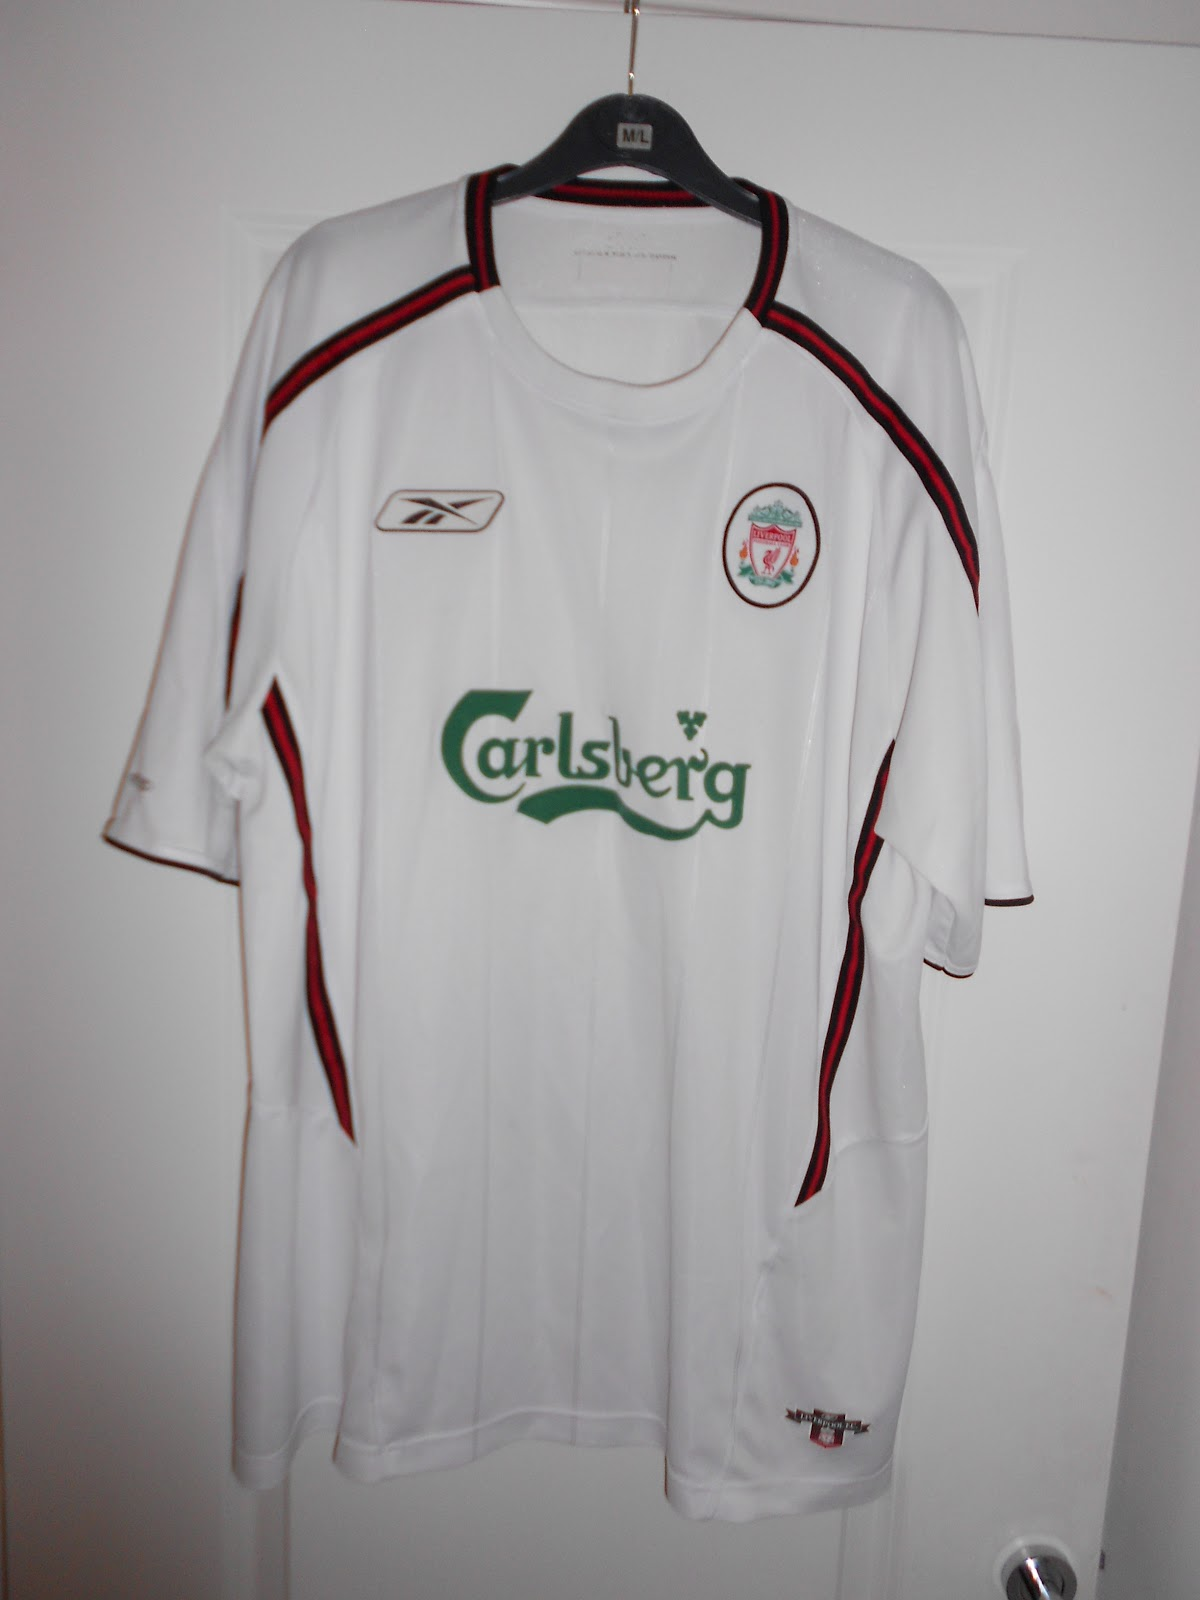 low priced f59bc f76ec My collection of football shirts: Liverpool Away 2003-2004